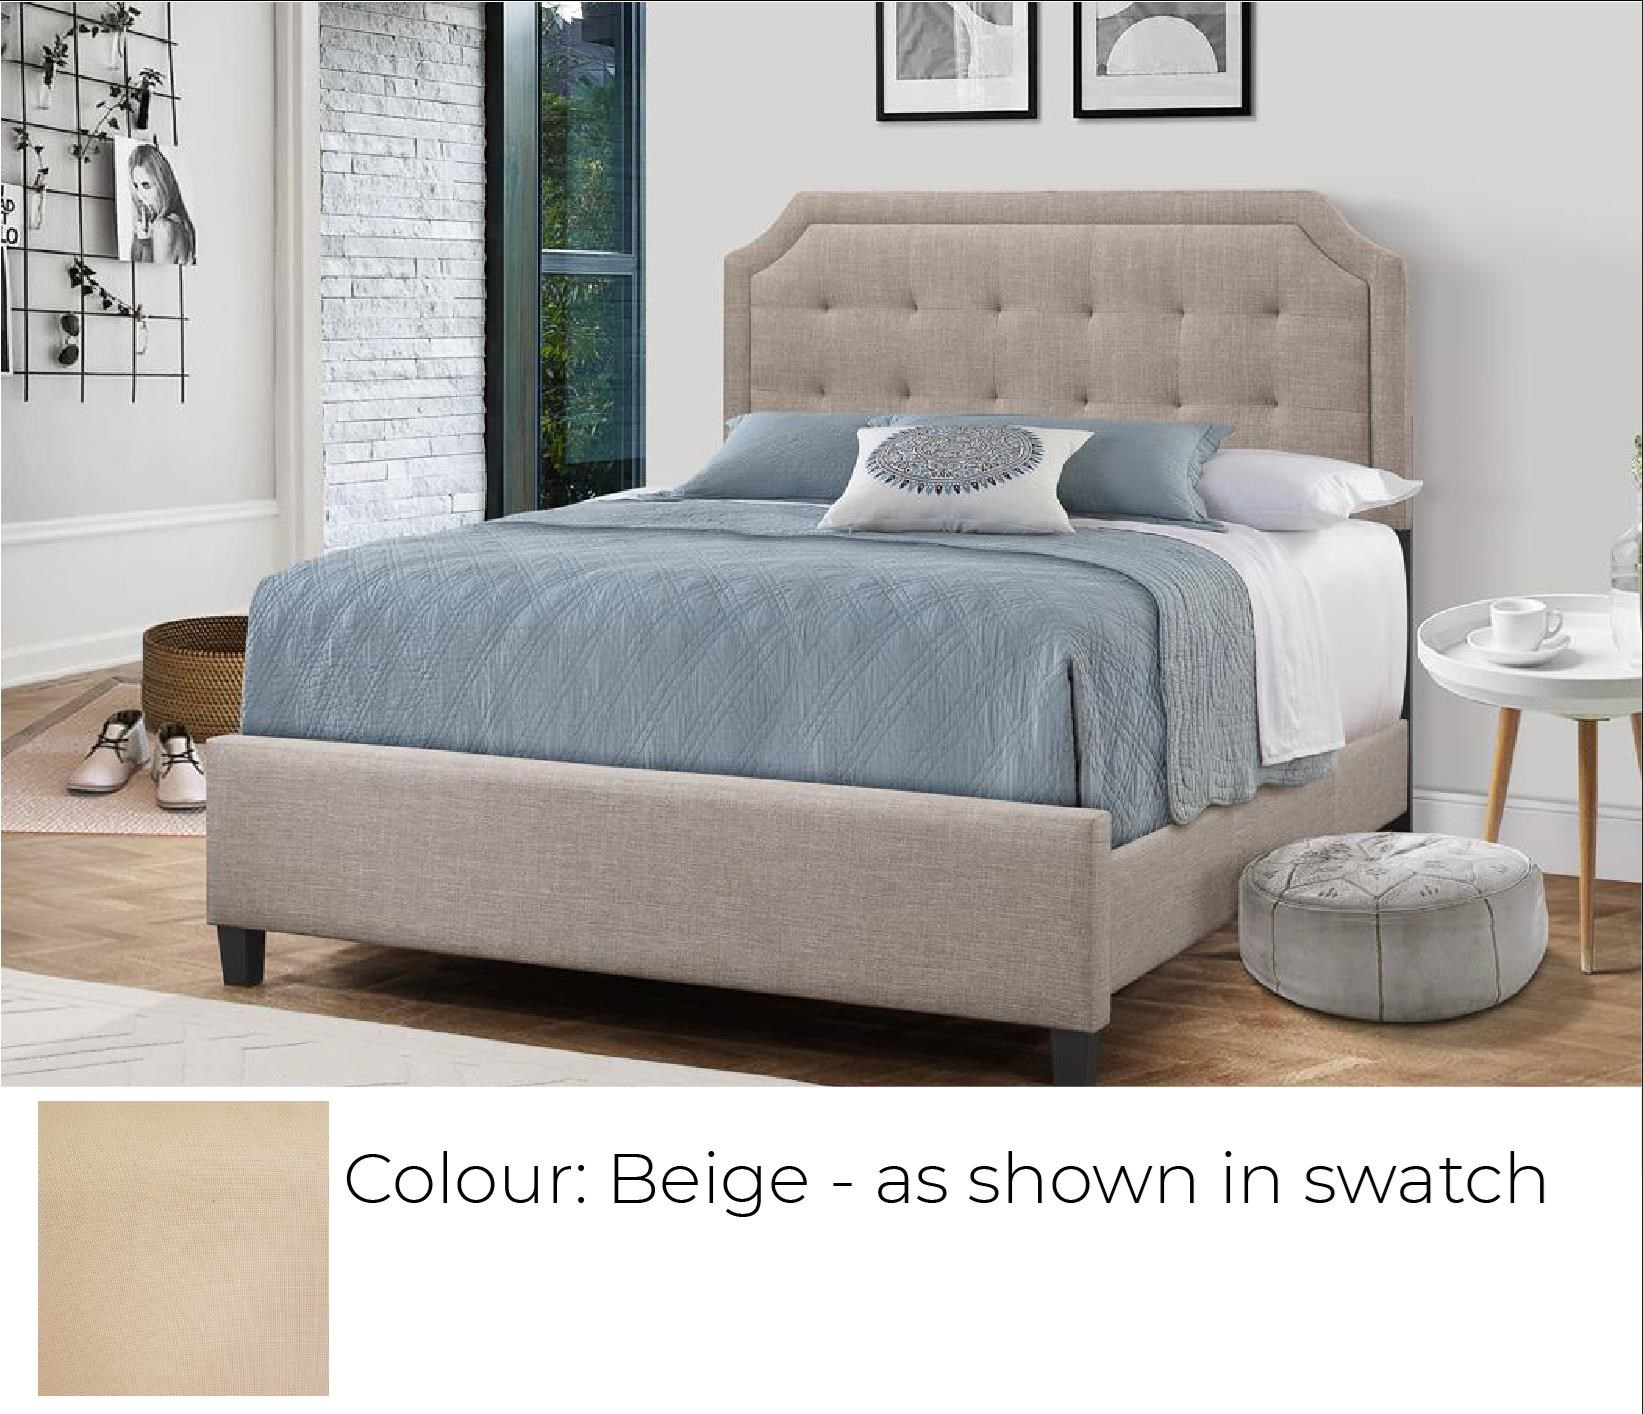 B623 - Ready to Assemble Upholstered Bed - Beige at Bennett's Furniture and Mattresses